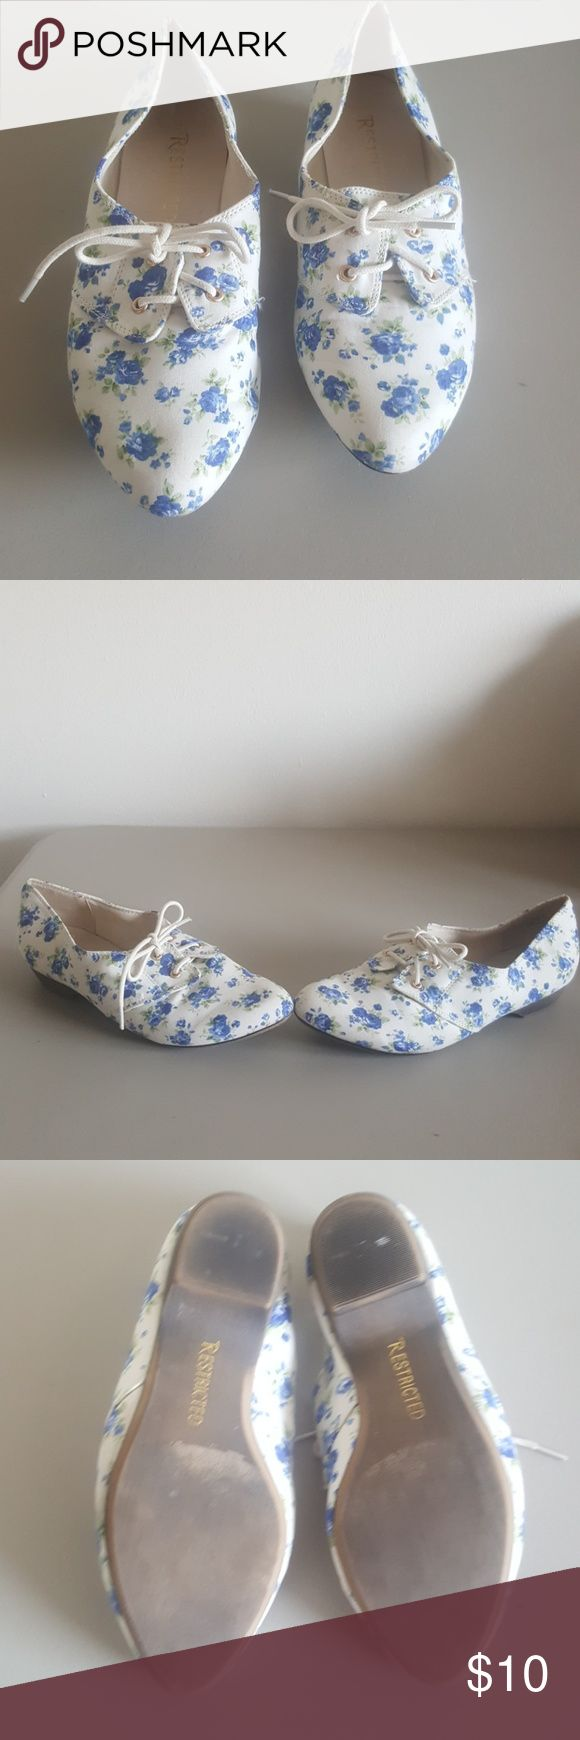 Floral Print Shoes Size 6.5M Cute floral print shoes by Restricted size 6.5M Restricted Shoes Flats & Loafers